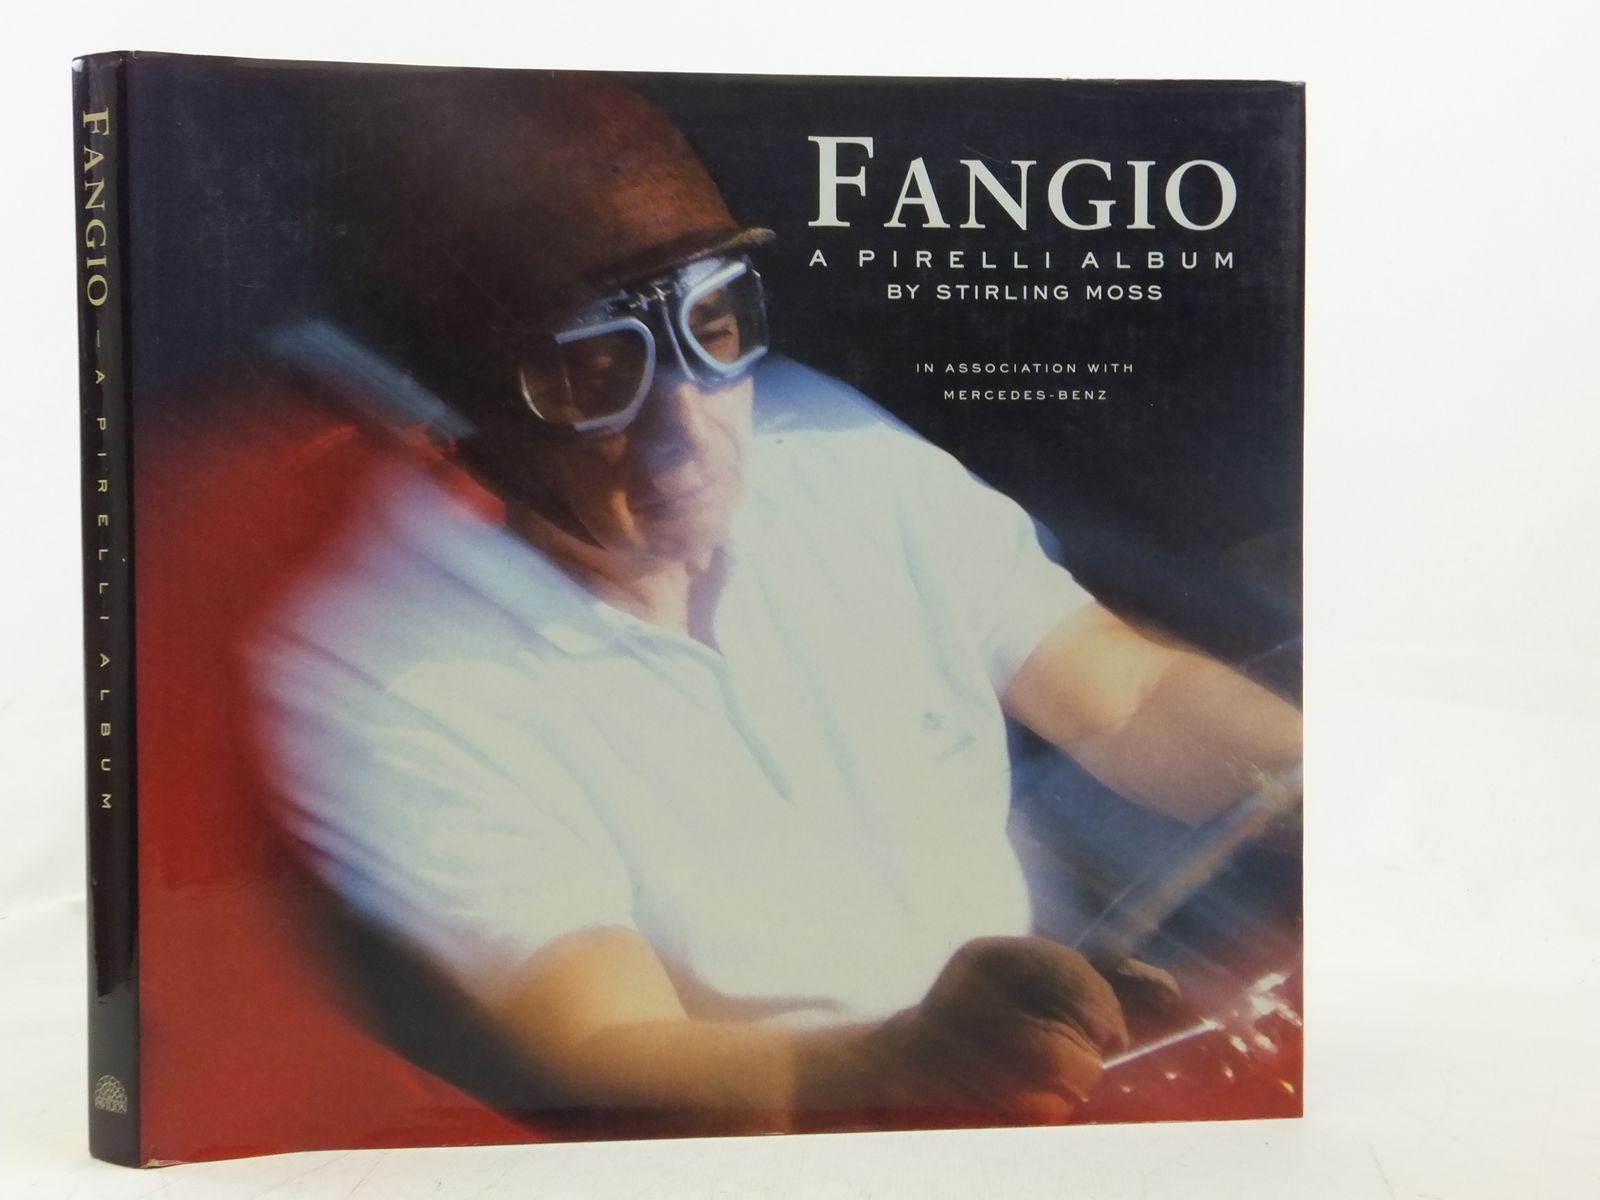 Photo of FANGIO A PIRELLI ALBUM written by Moss, Stirling published by Pavilion (STOCK CODE: 1810812)  for sale by Stella & Rose's Books